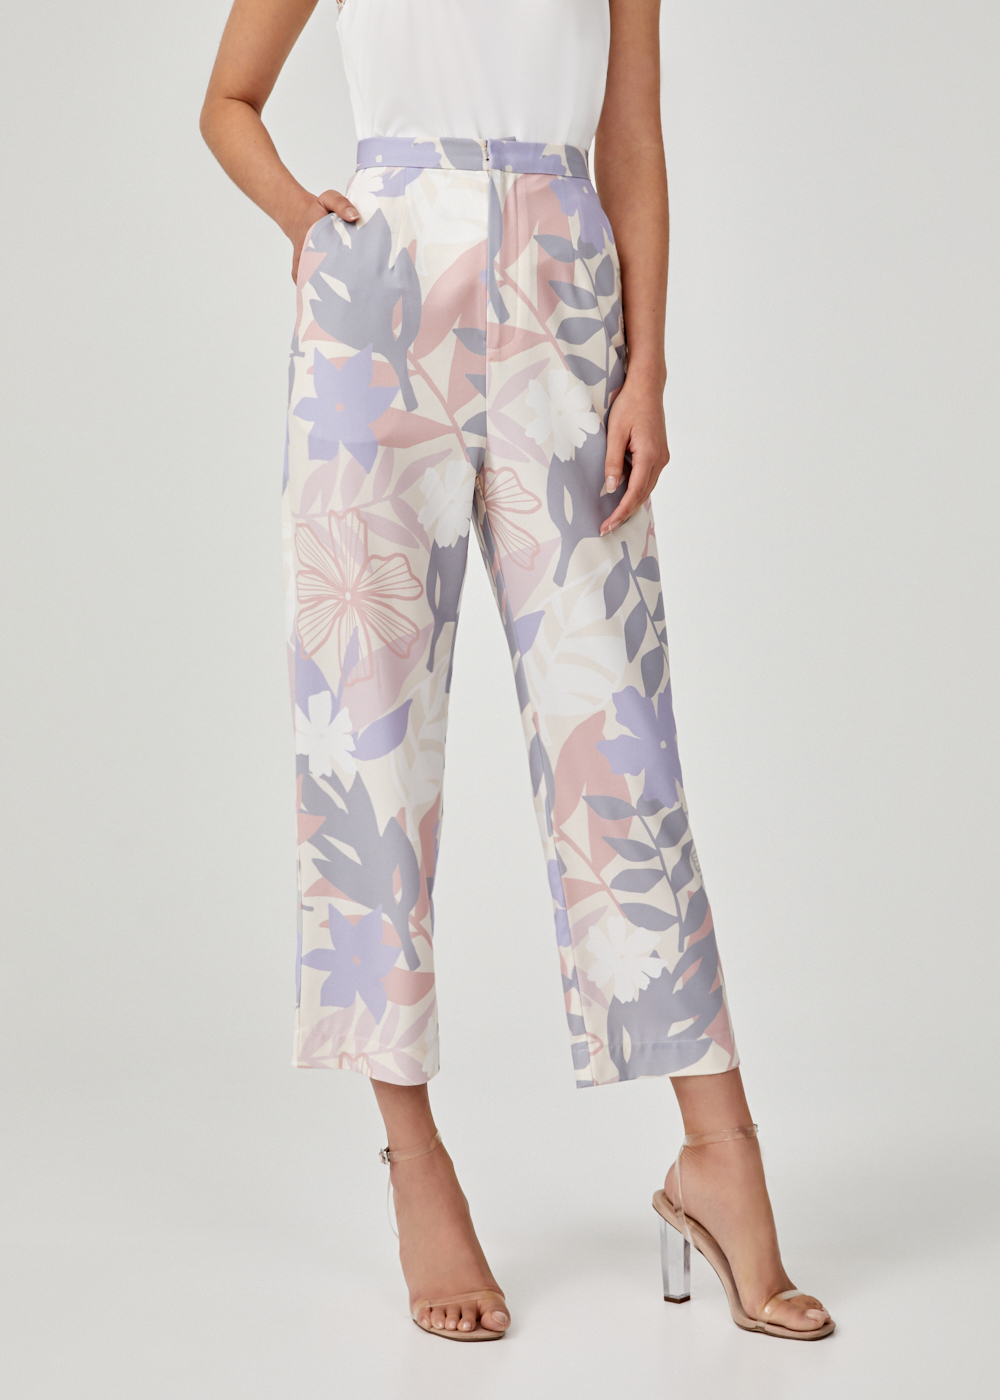 Aileena Peg Leg Pants in Tropicana Dream